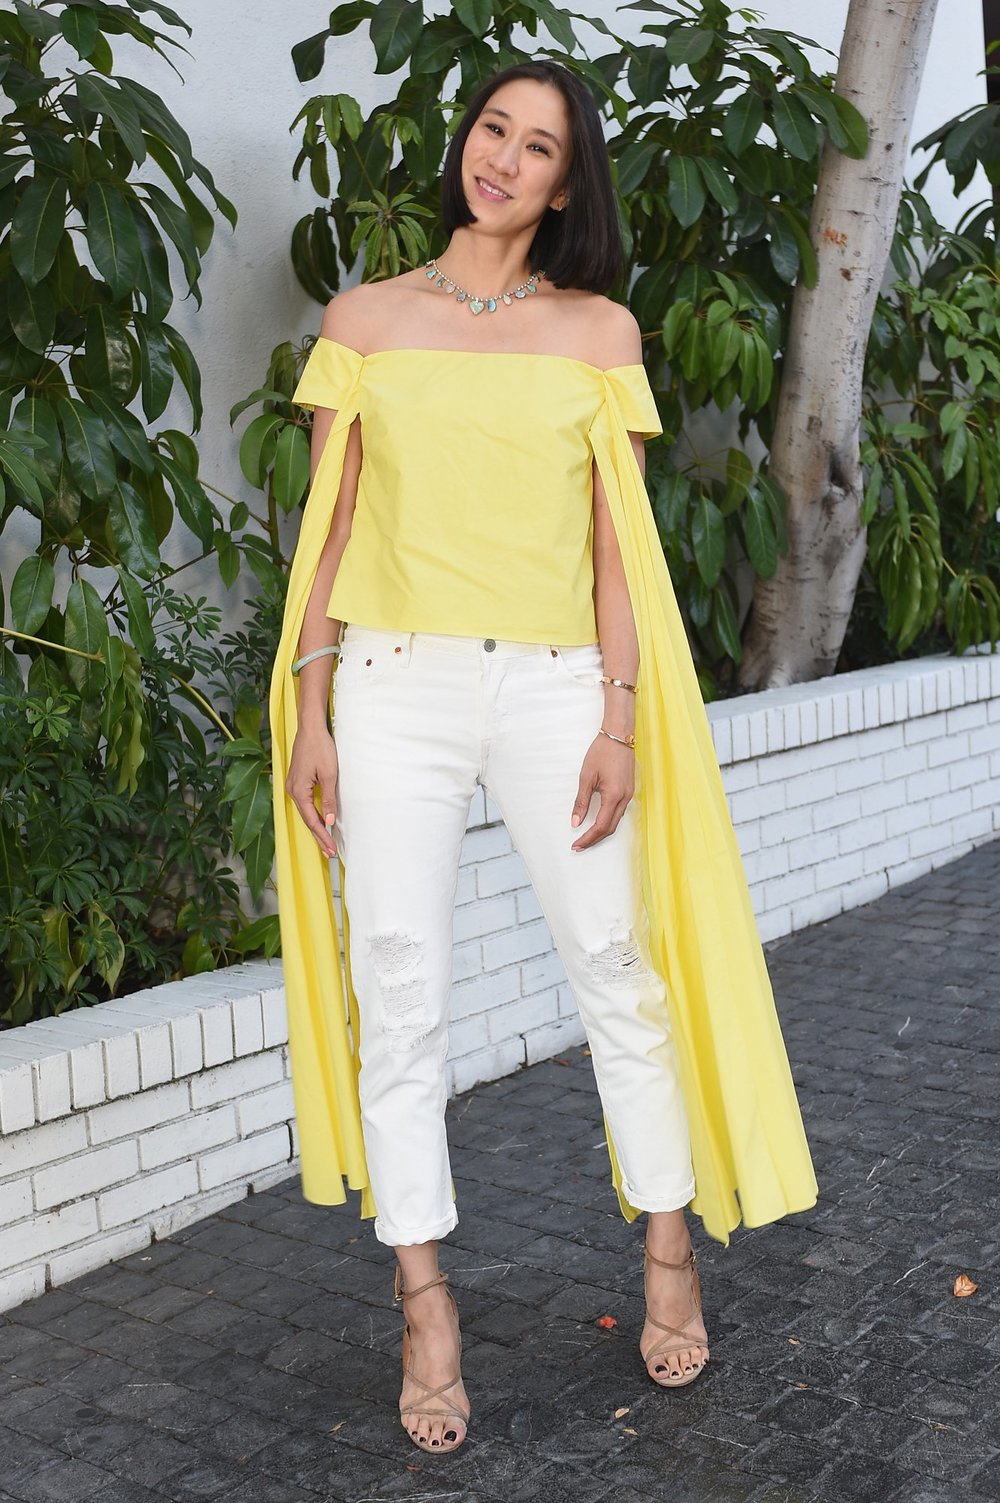 cfda-vogue-fashion-fund-2015-la-show-28.jpg